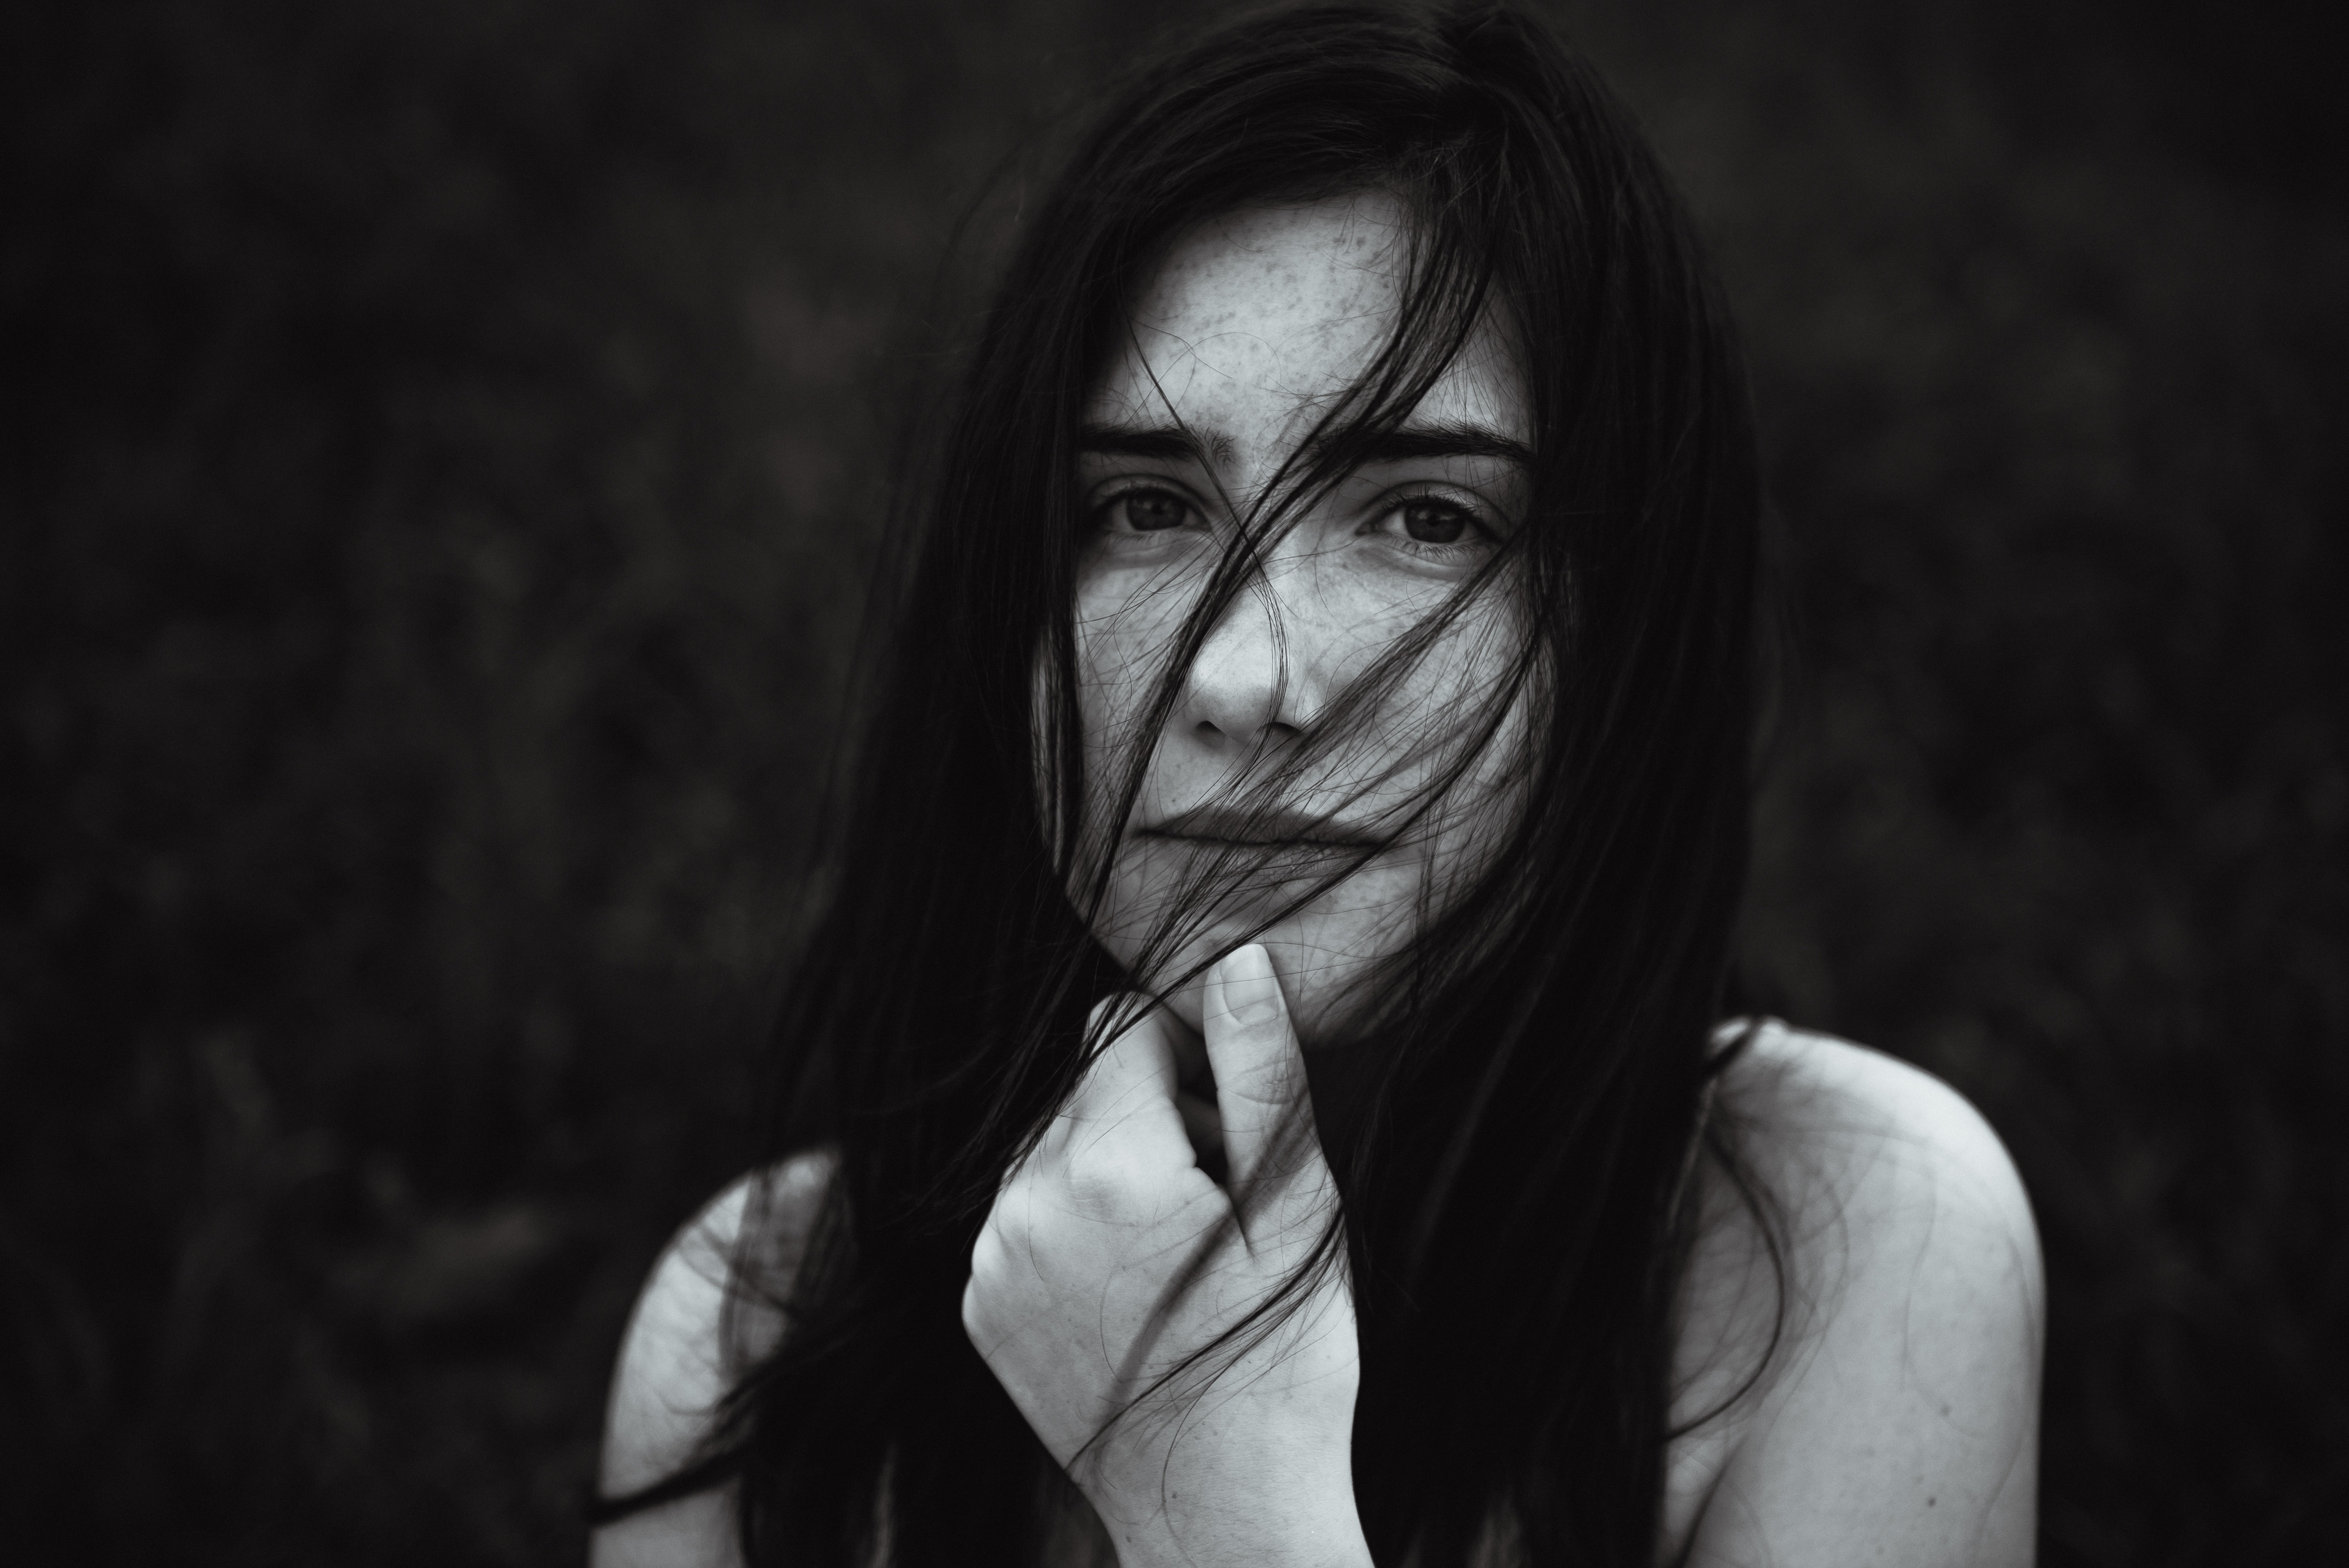 grayscale photography of woman with long hair